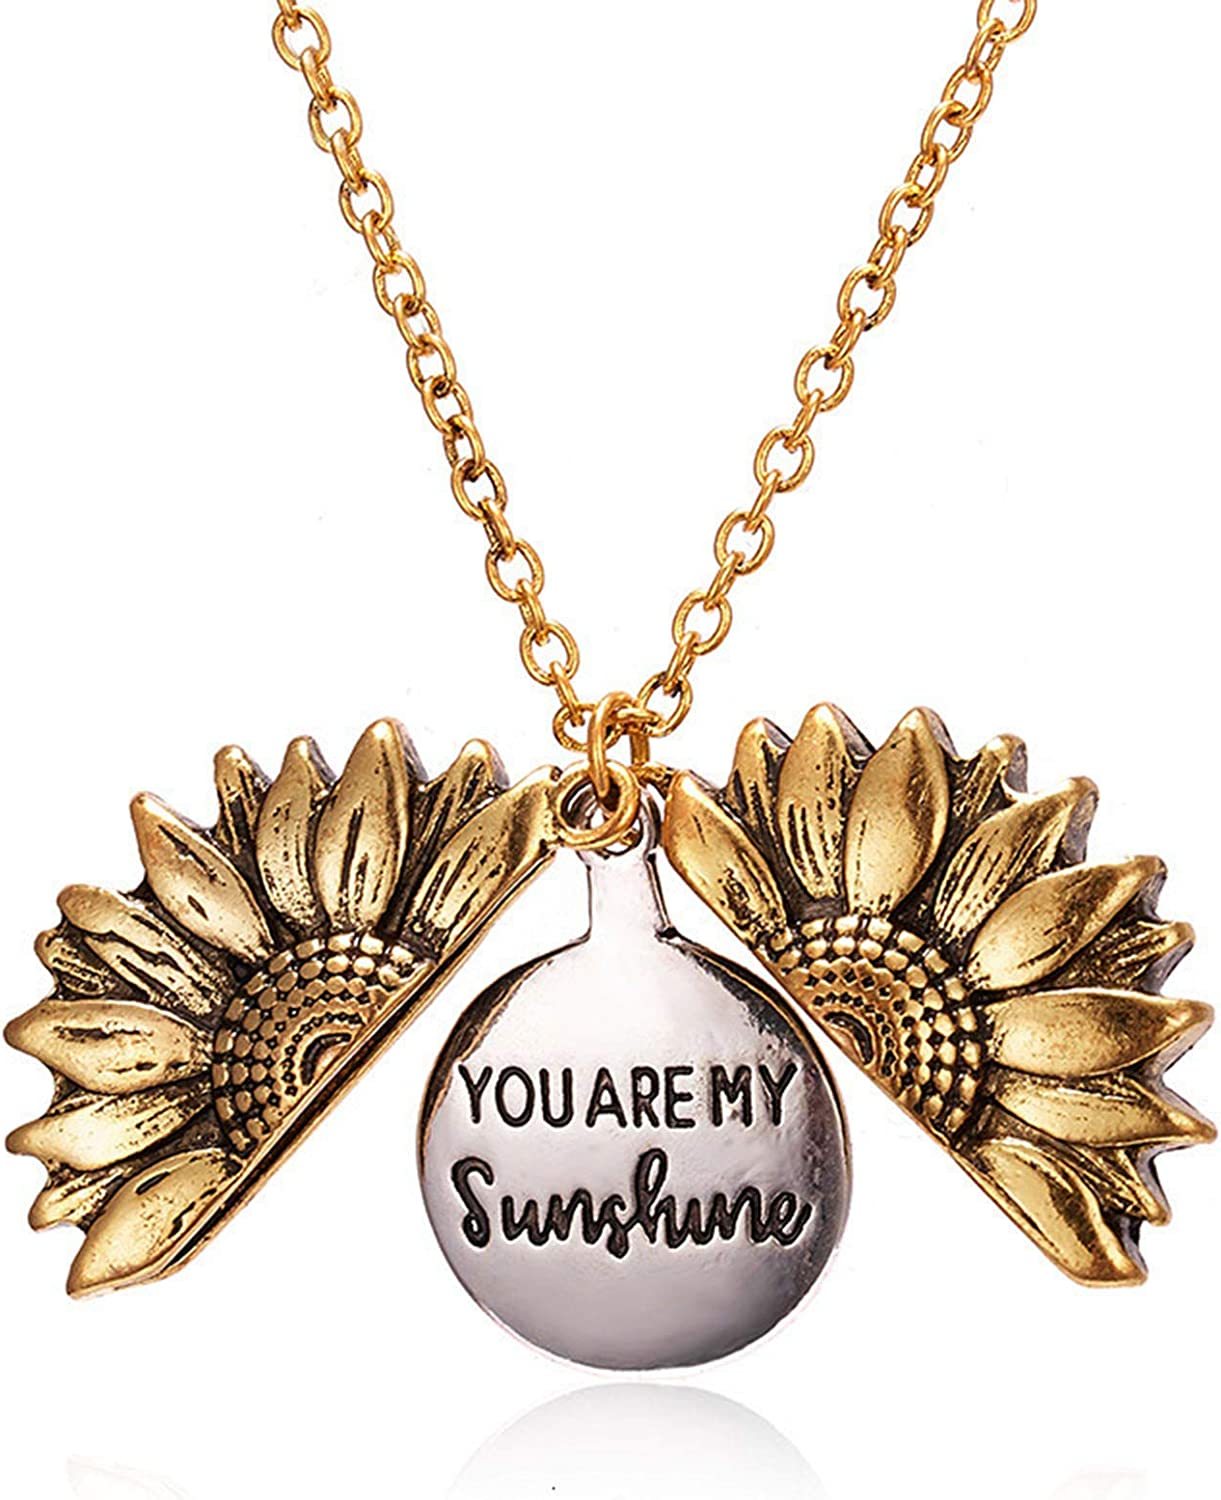 RMOJUL You are My Sunshine Necklace - Unique Sunflower Locket Pendant - Gift for Mom, Sister, Best Friend, and Girlfriend, Ideal for Birthdays, Christmas Day, Valentine's Day